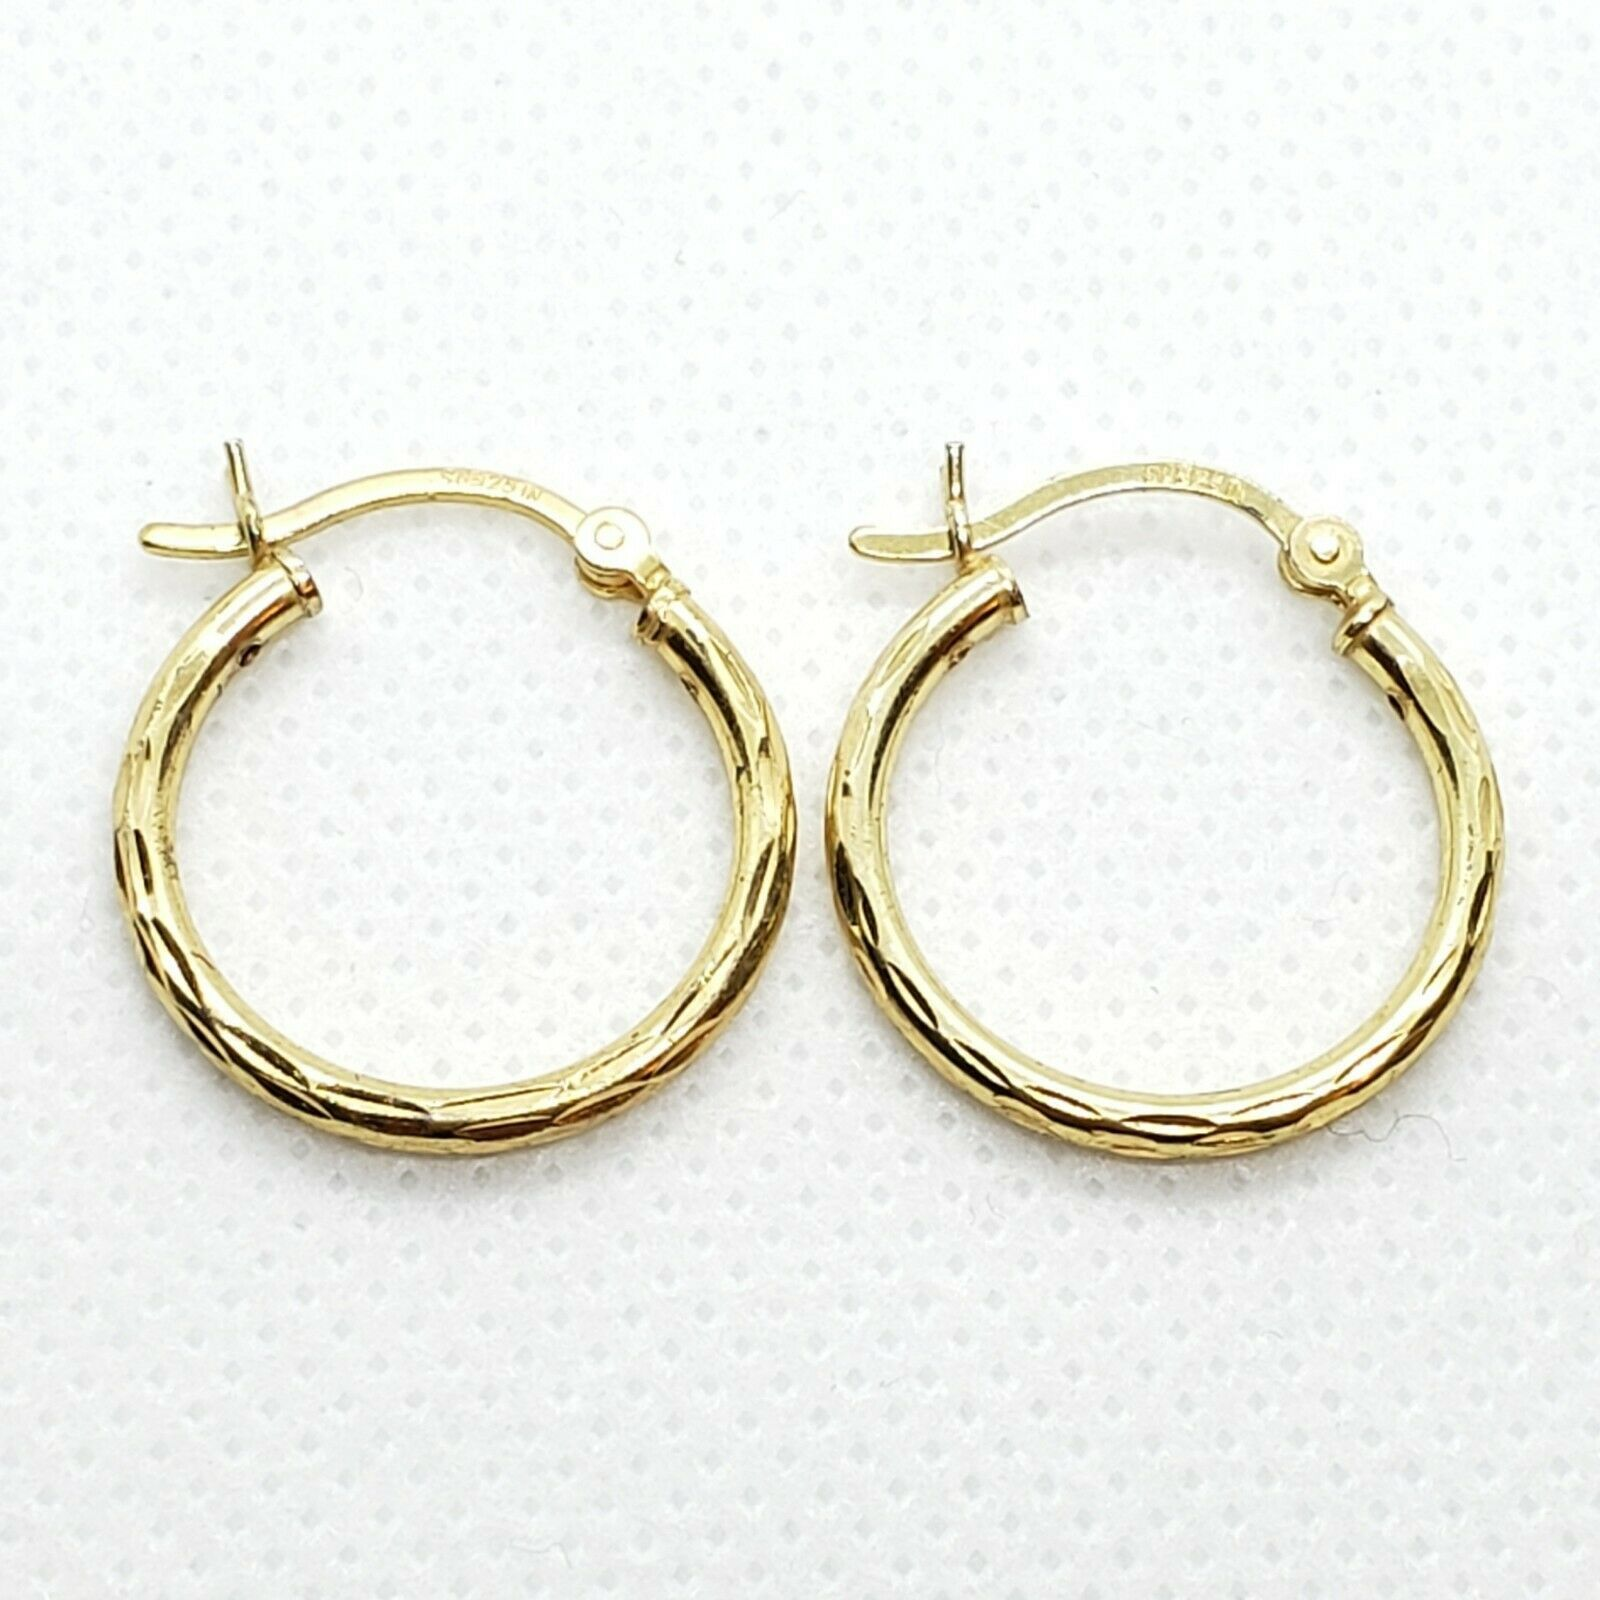 Primary image for SU IN 18k On Sterling Silver 925 Hoop Earrings Free Shipping